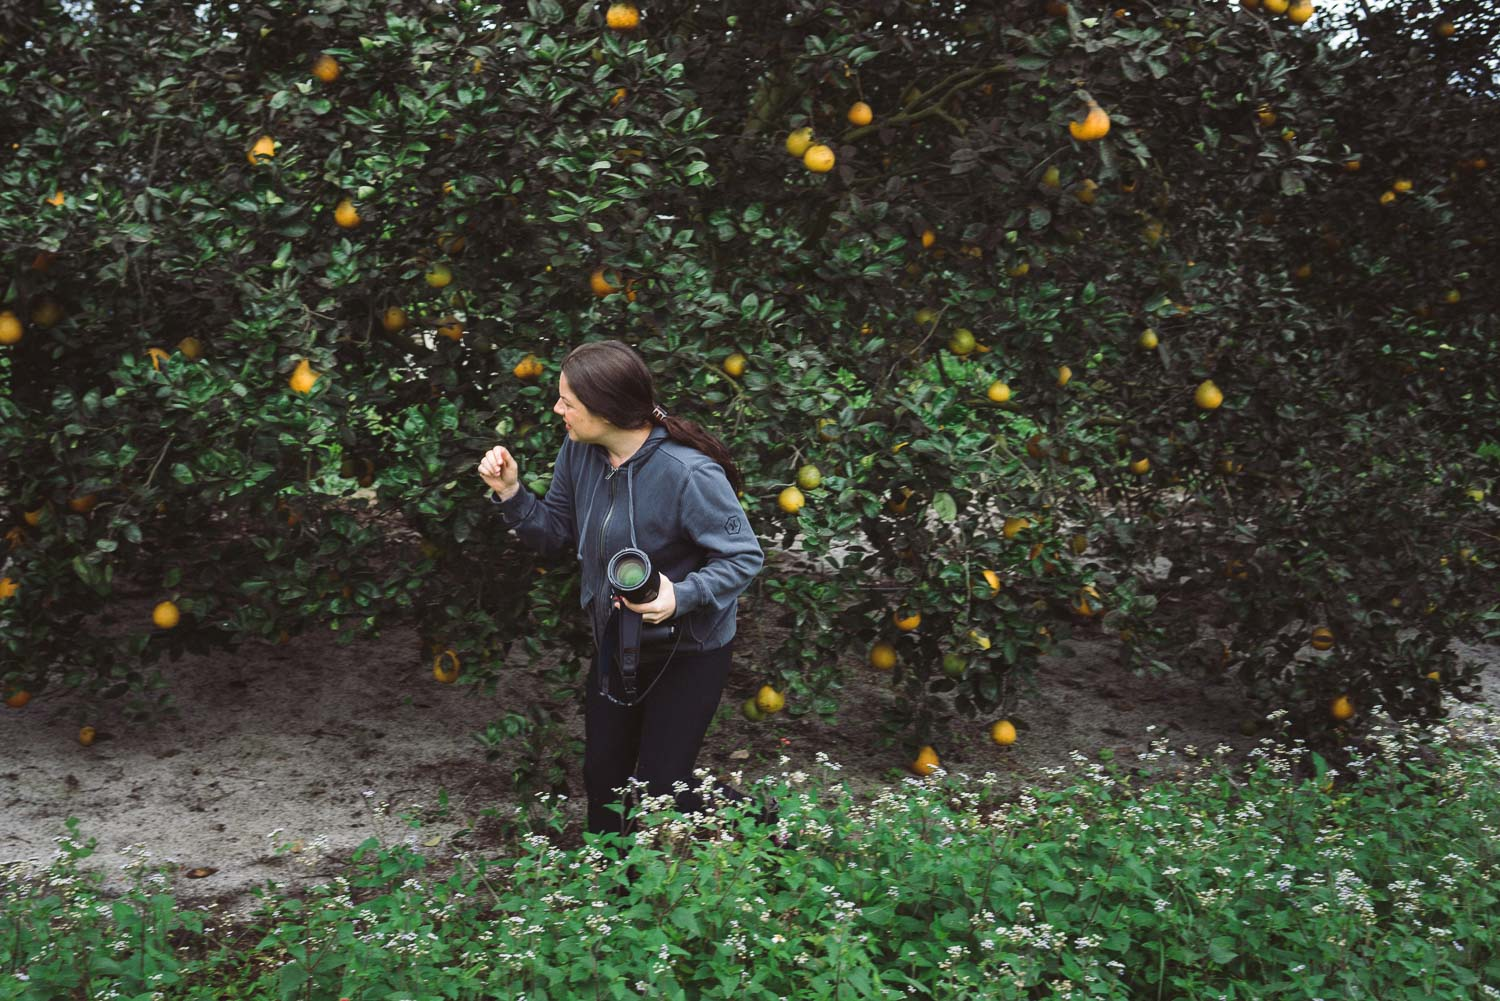 Kristen Penoyer, a Northeast Florida based culinary photographer, shoots in an orange grove in Vero Beach, Florida.